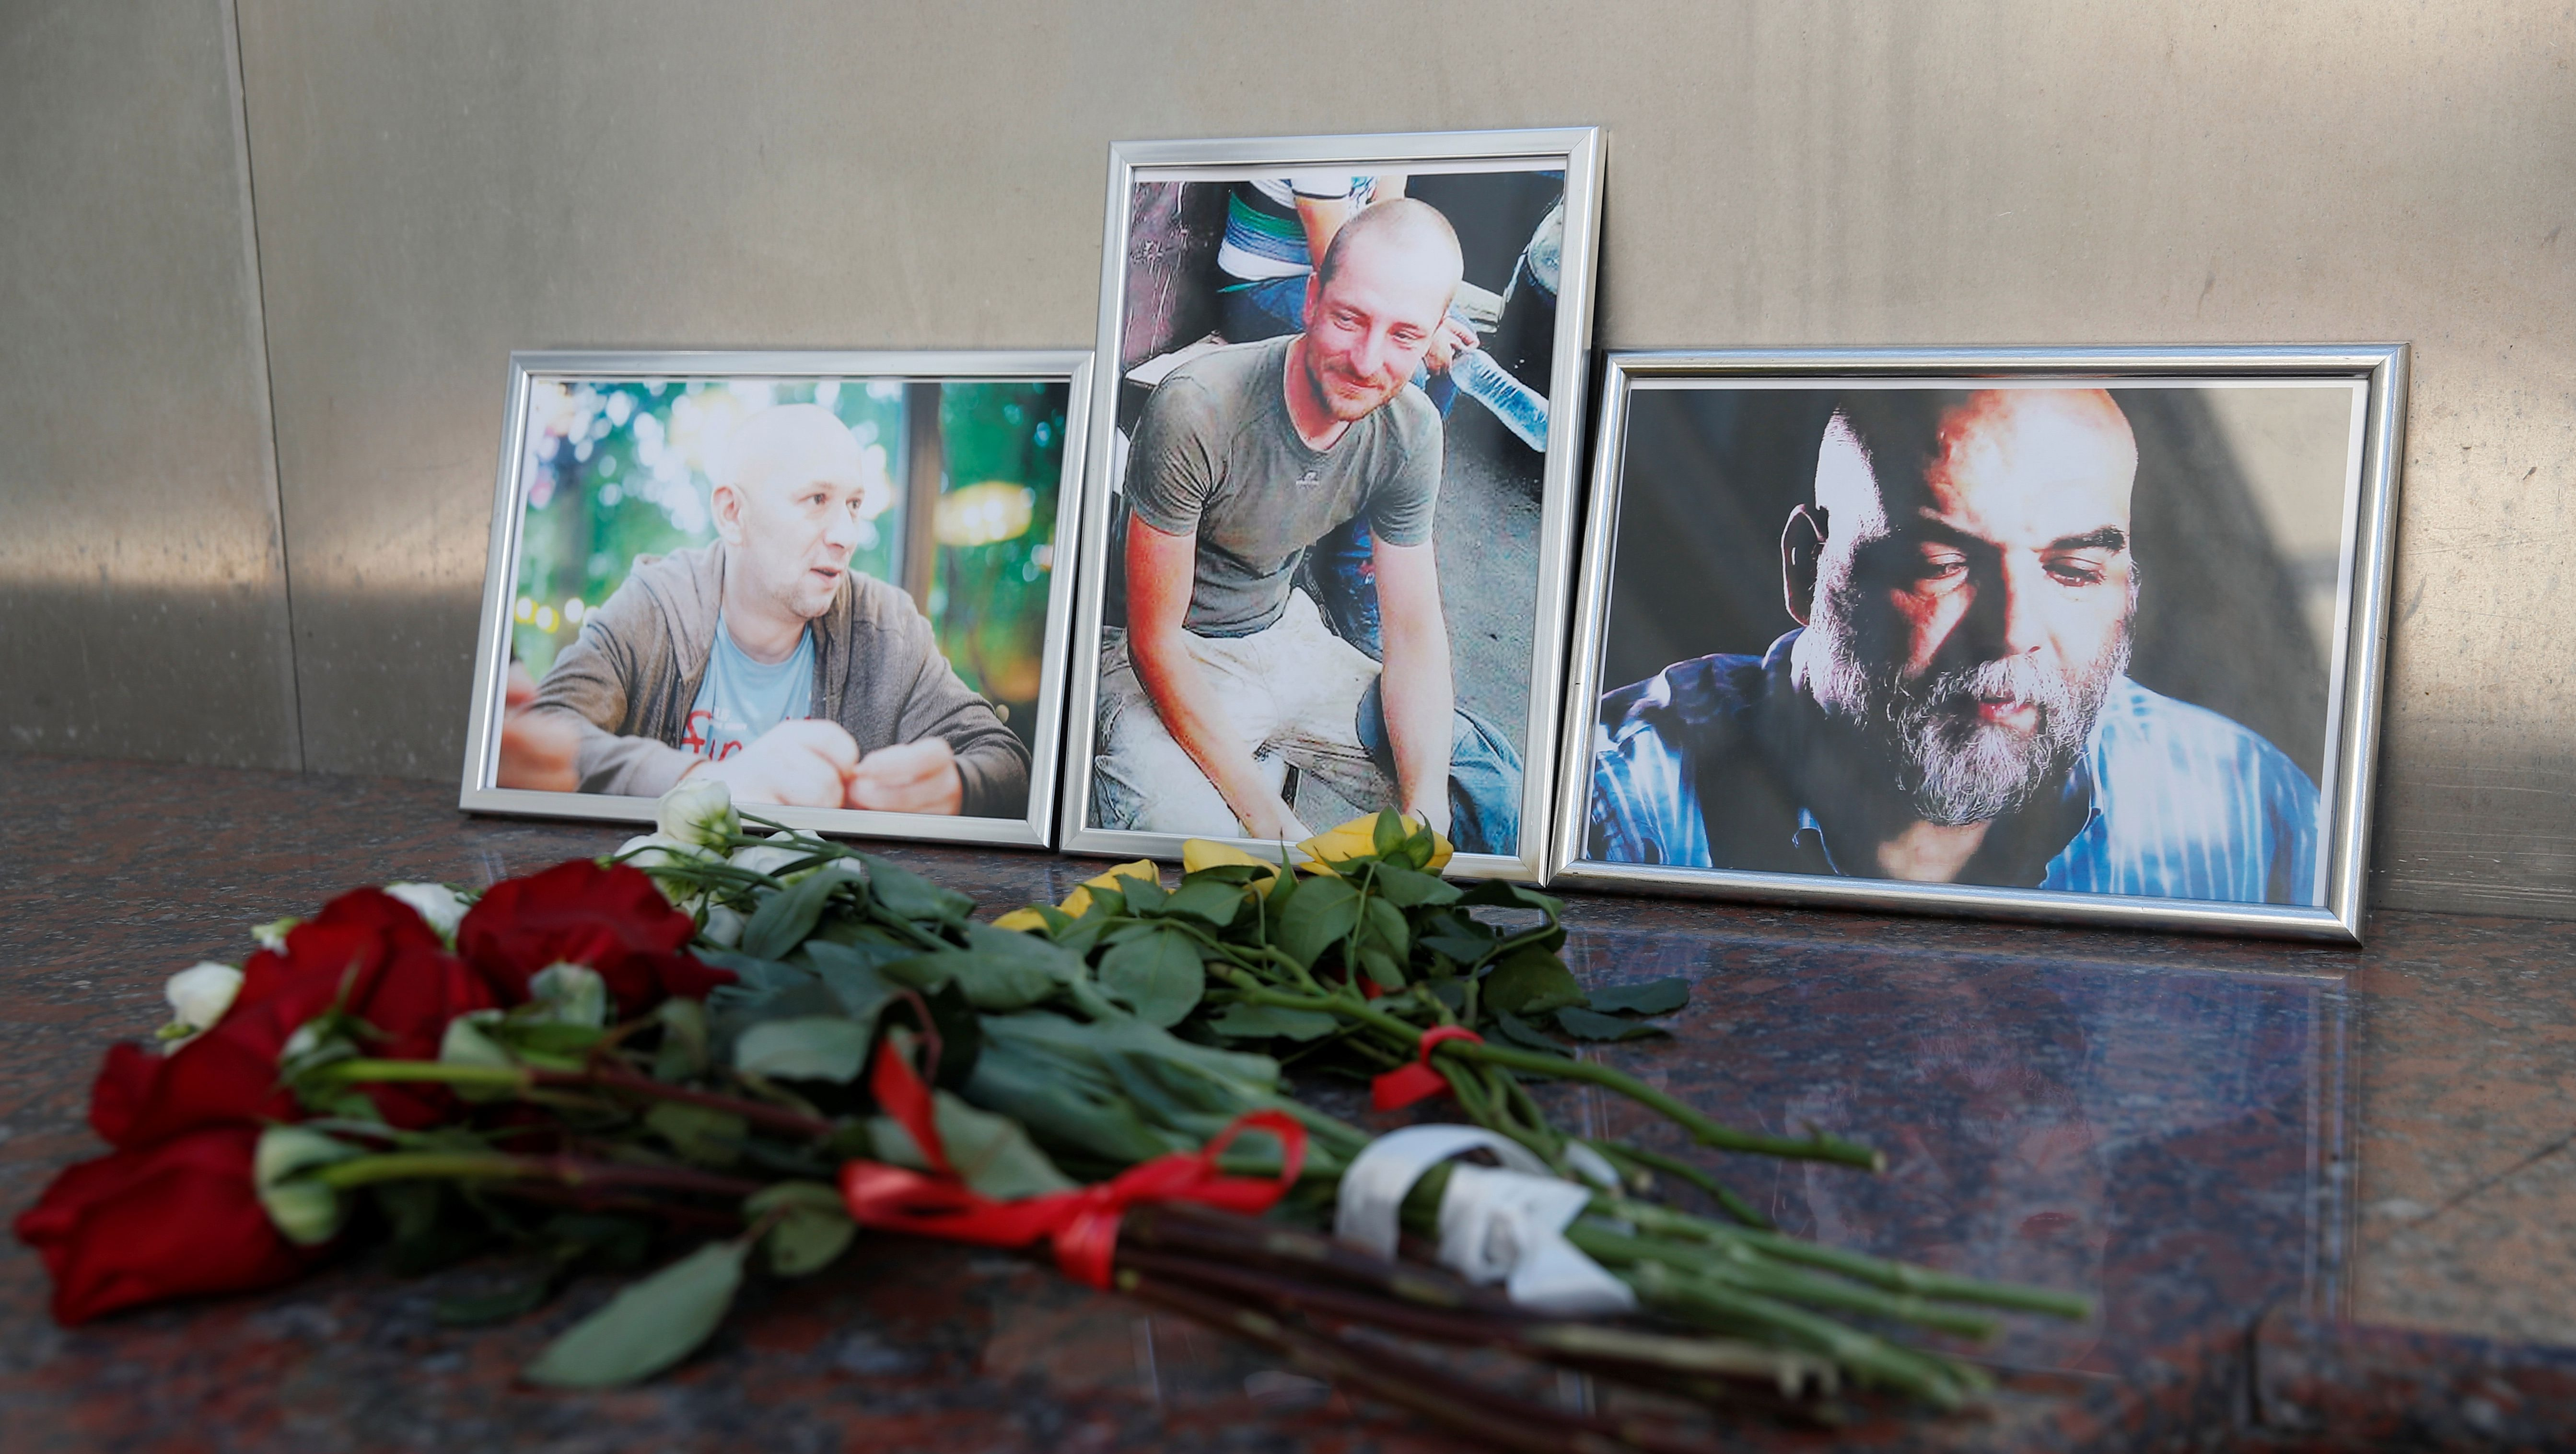 Photographs of journalists, (R-L) Orhan Dzhemal, Kirill Radchenko and Alexander Rastorguyev, who were recently killed in Central African Republic by unidentified assailants, are on display outside the Central House of Journalists in Moscow, Russia August 1, 2018.